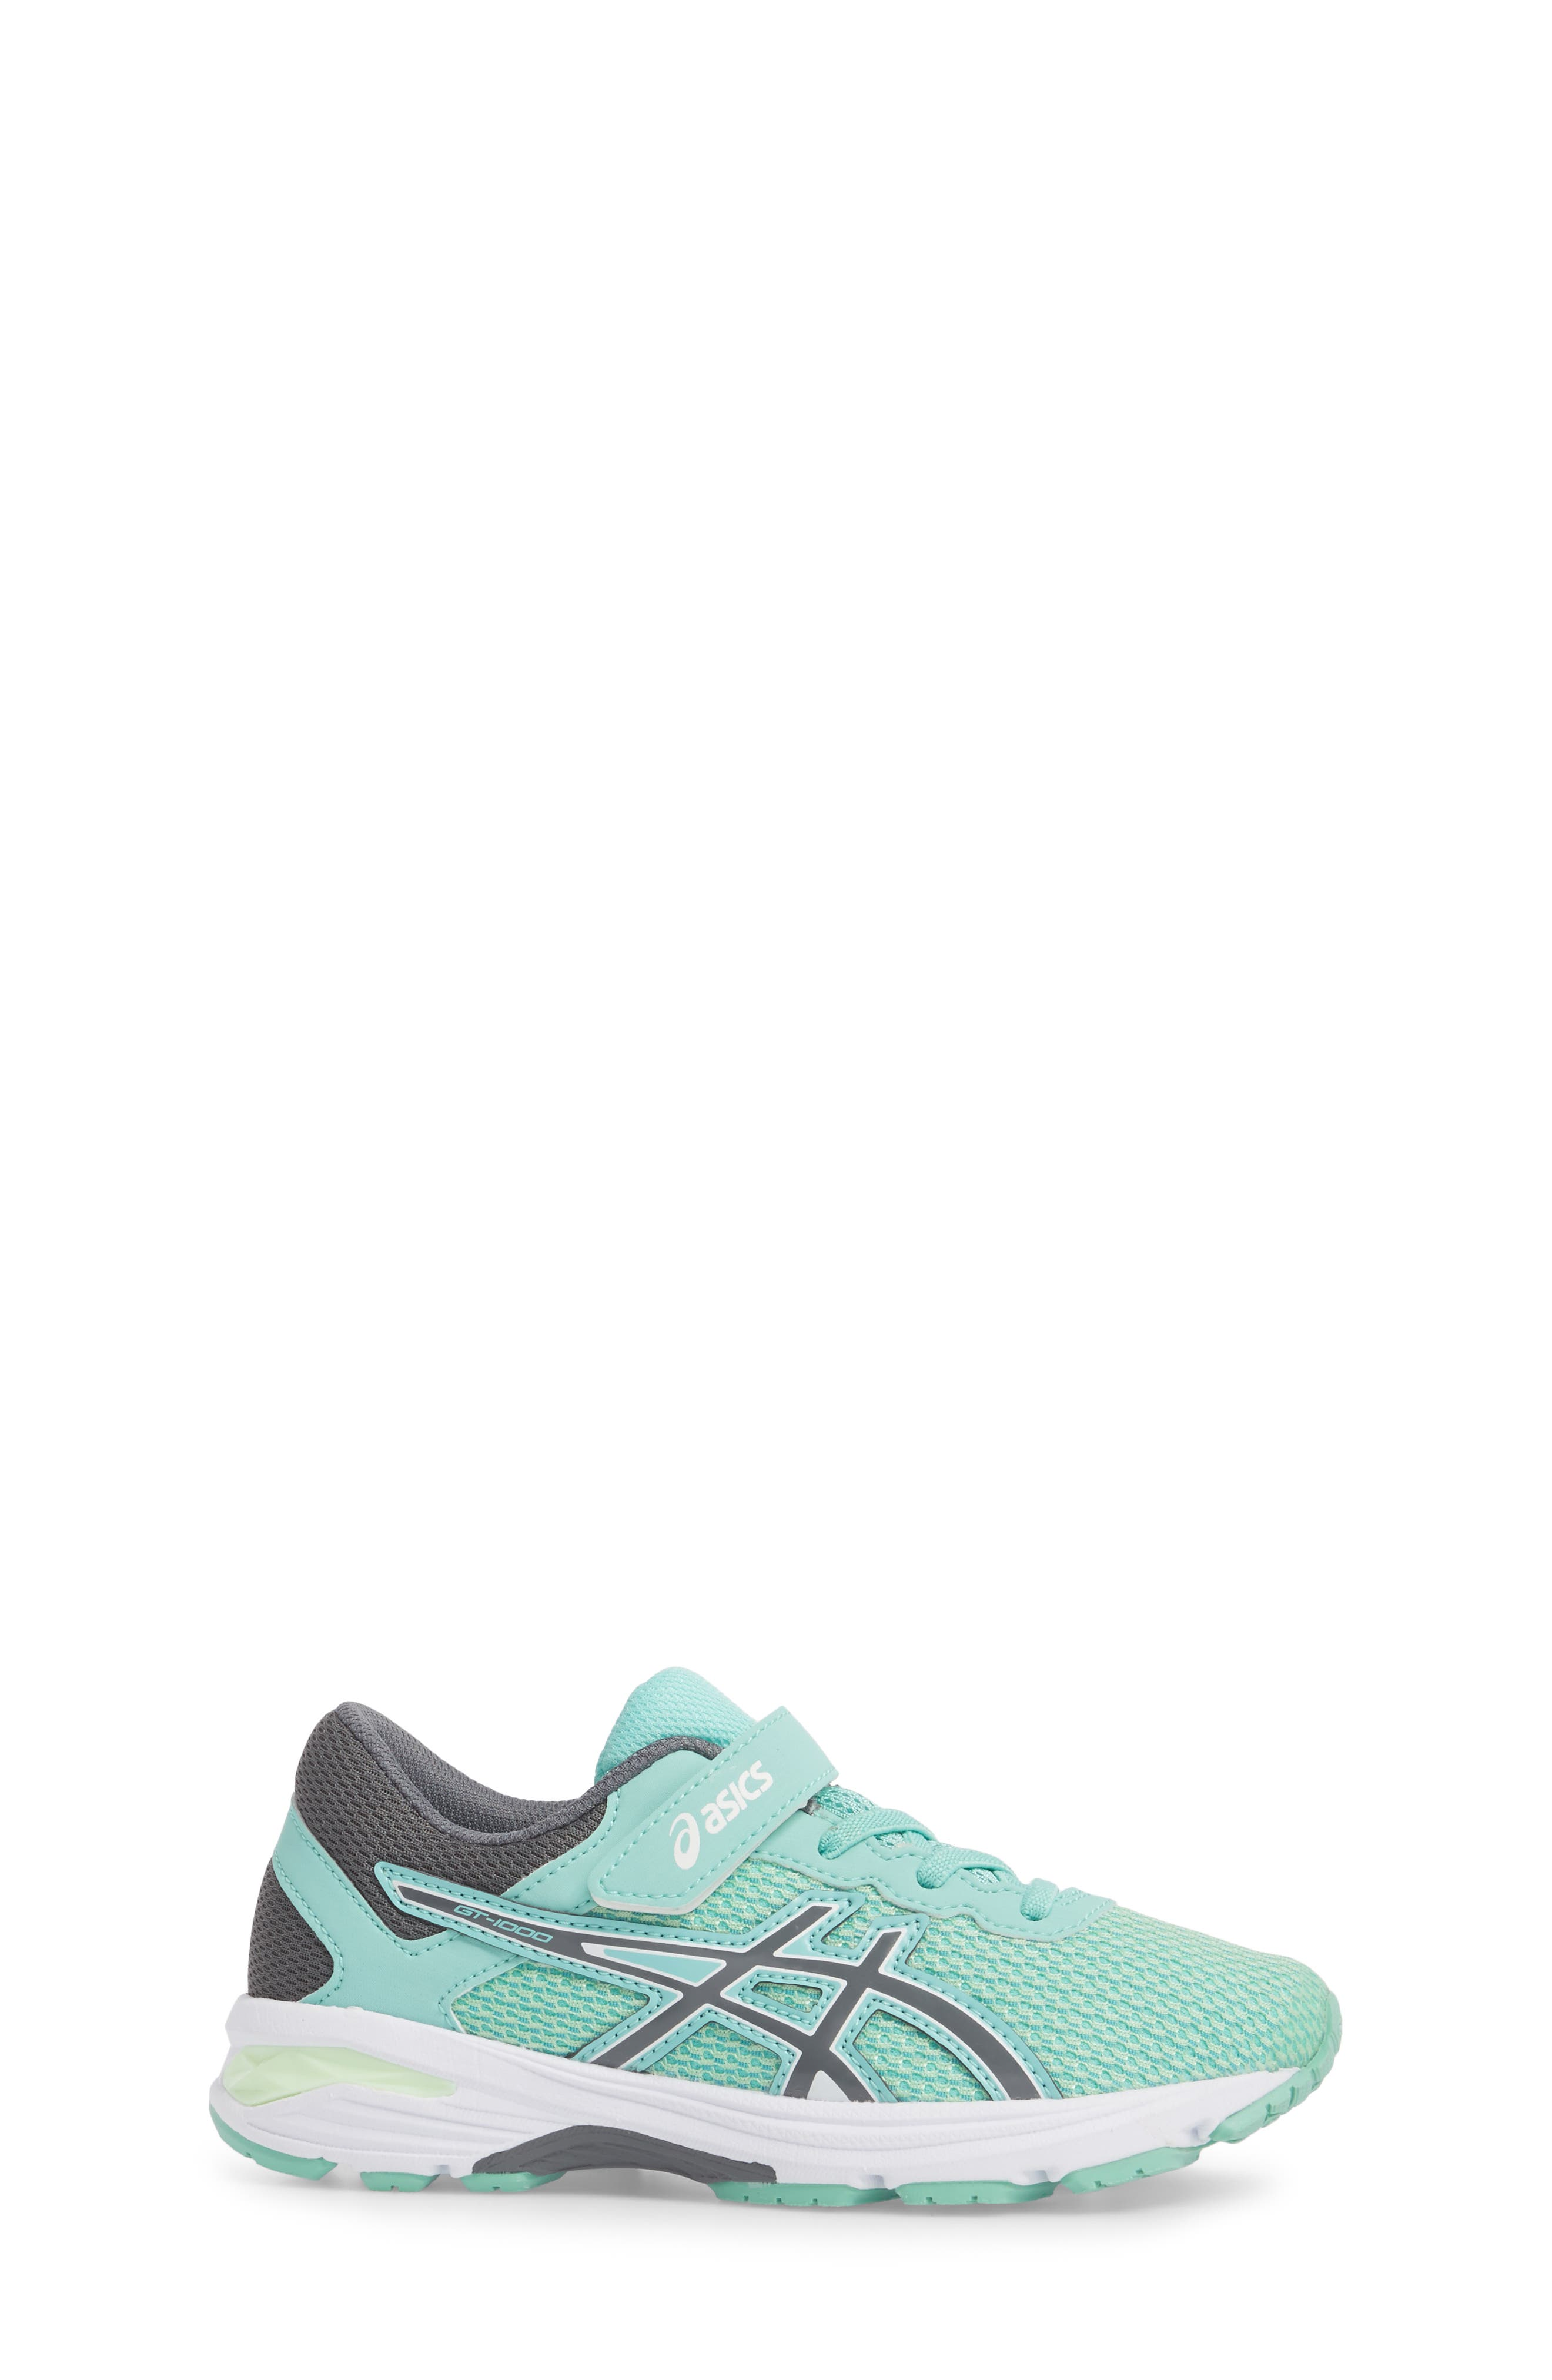 Asics GT-1000<sup>™</sup> 6 PS Sneaker,                             Alternate thumbnail 3, color,                             Carbon/ Opal Green